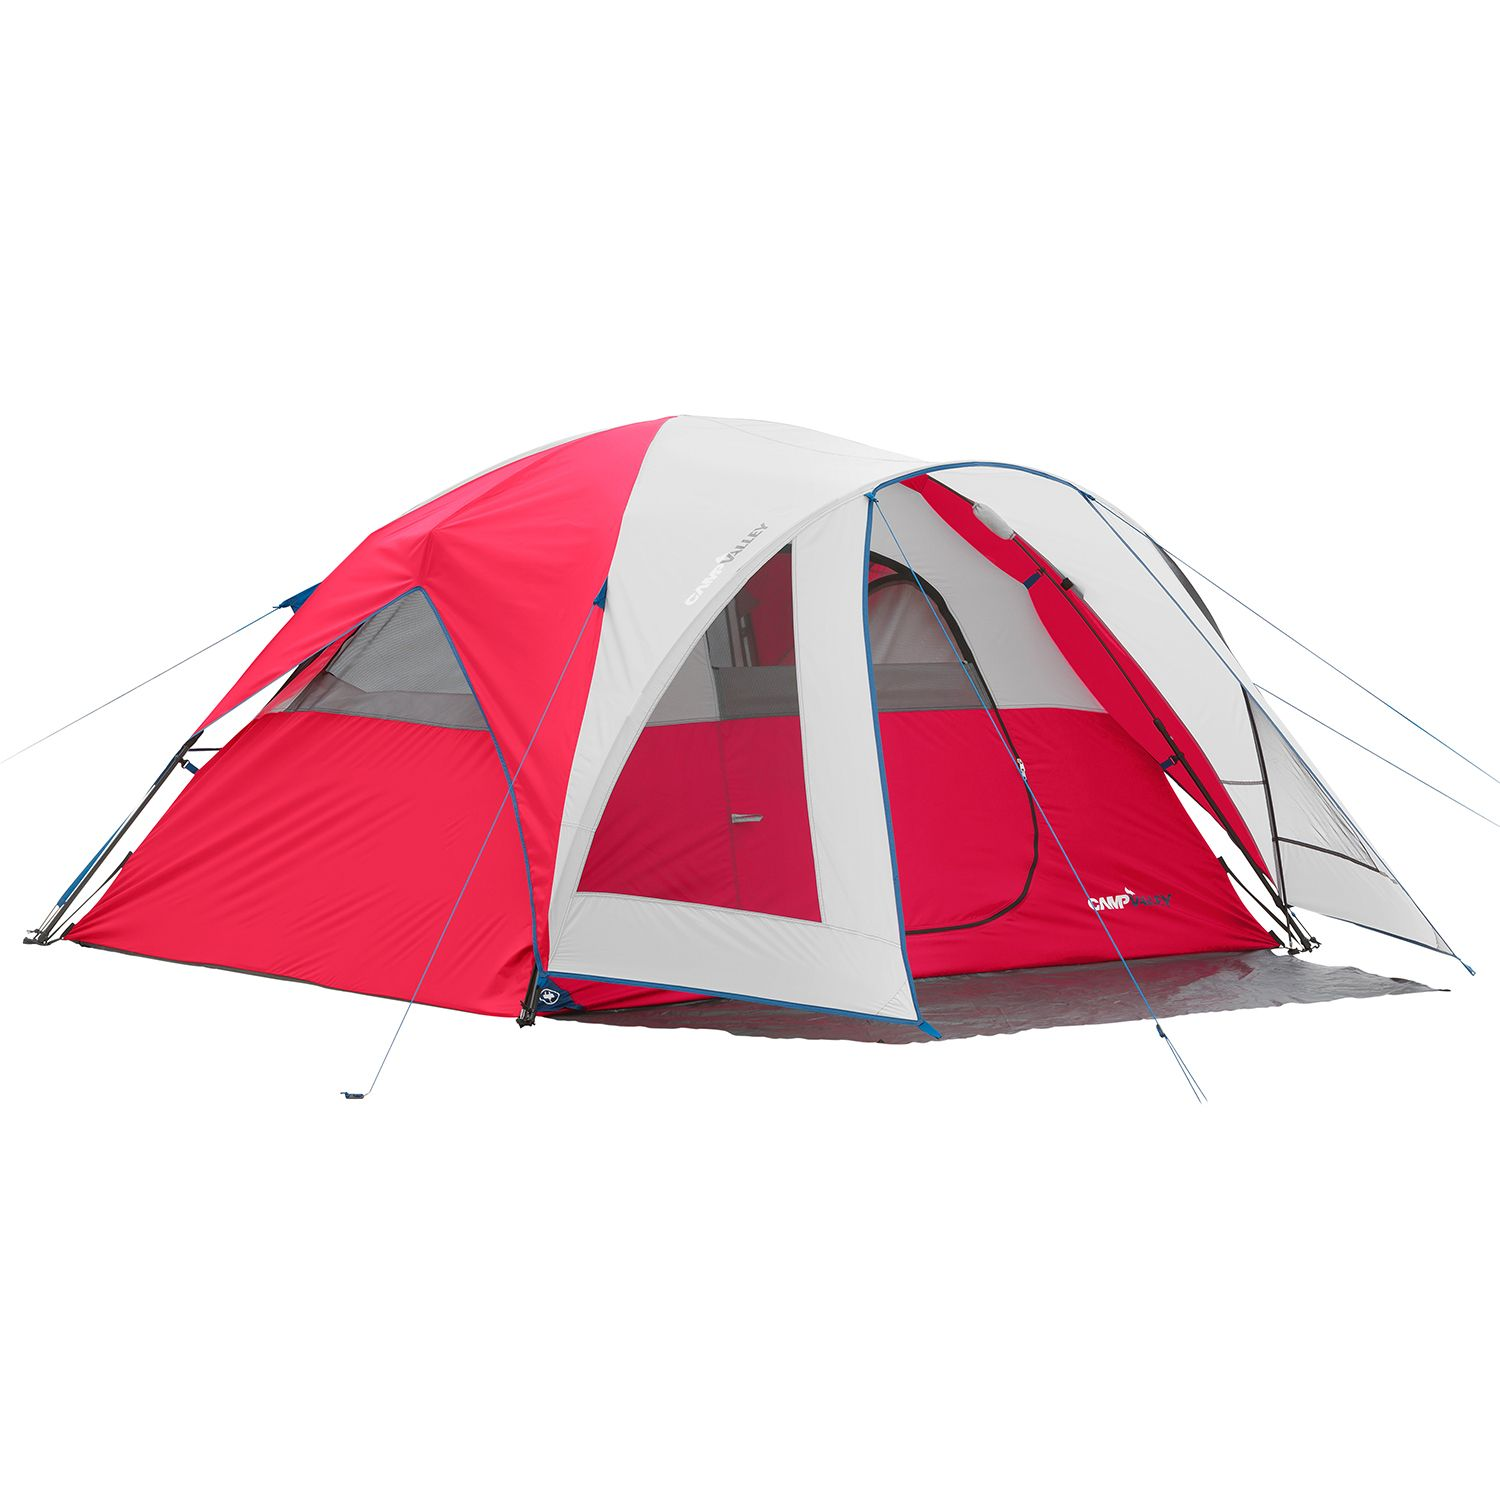 C&valley 4-Person Instant Dome Tent Red  sc 1 st  Walmart & Campvalley 4-Person Instant Dome Tent Red - Walmart.com